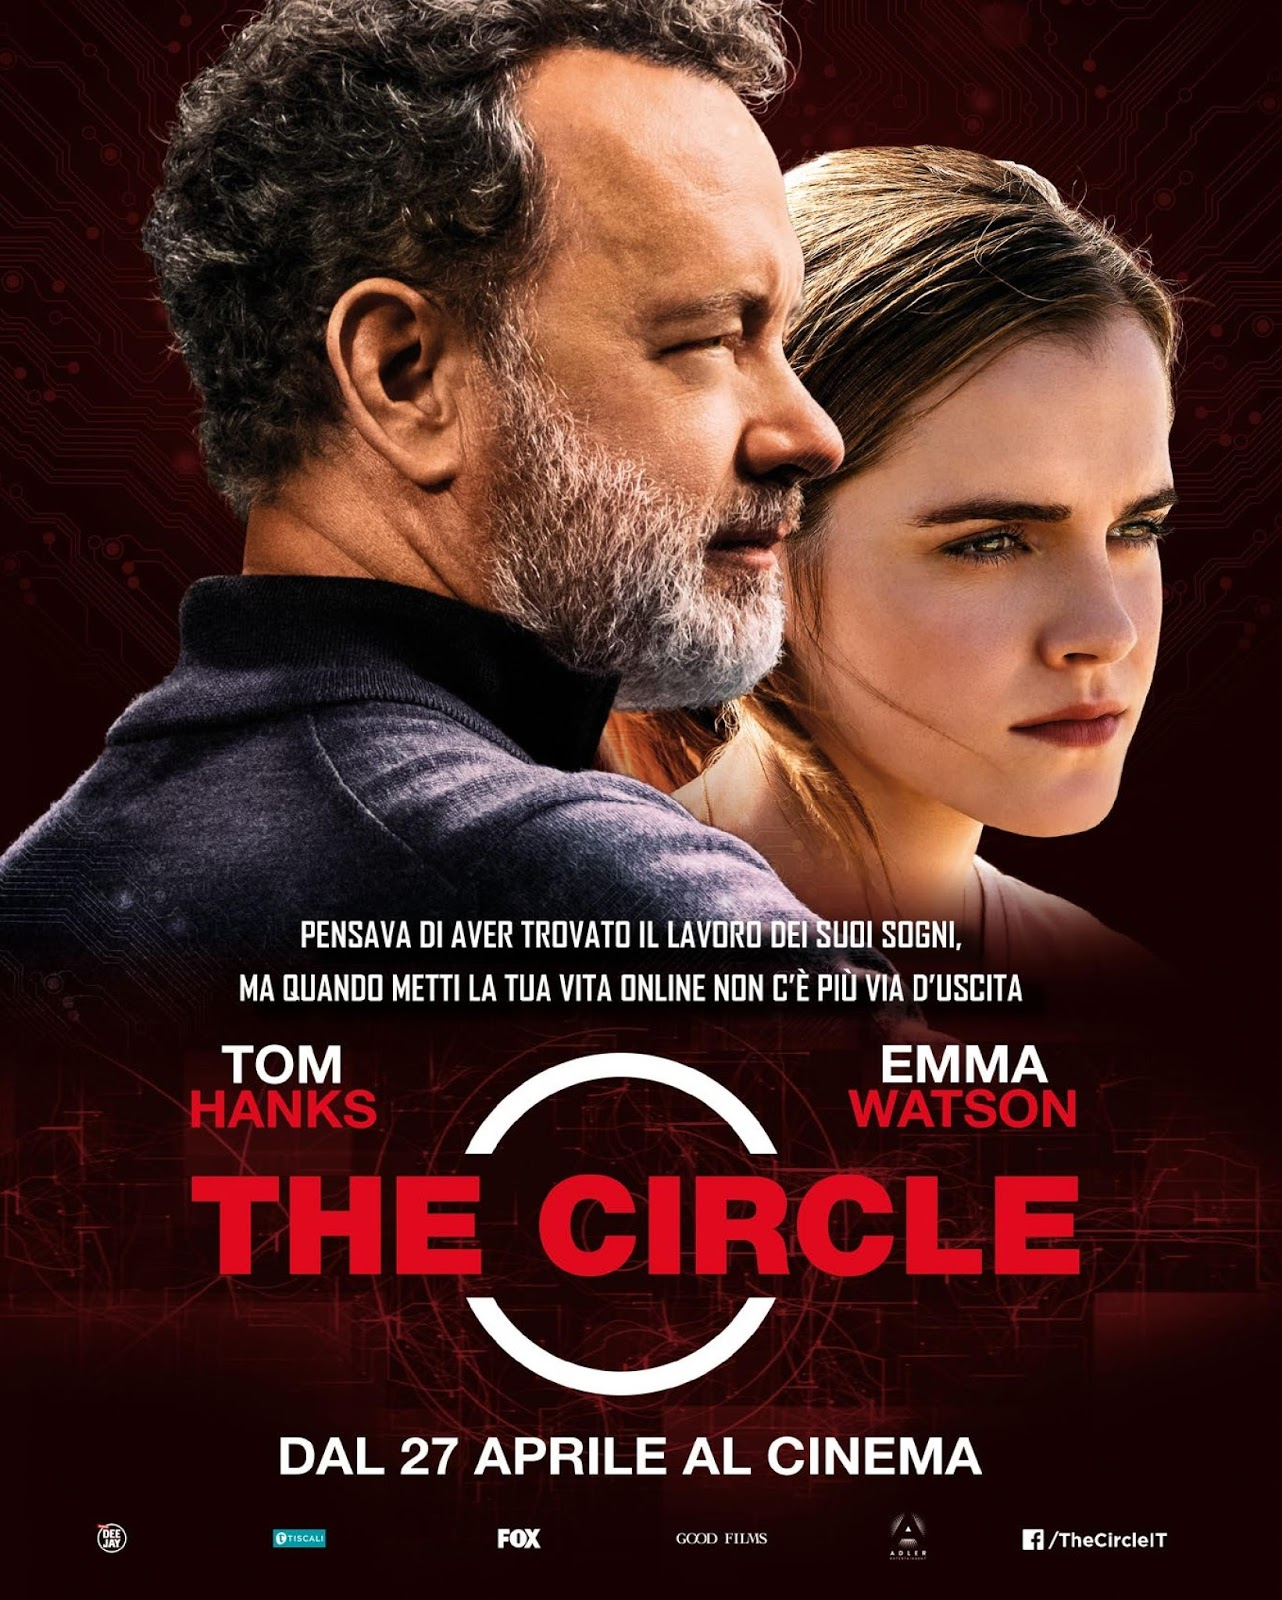 The Circle (2017) Emma Watson, Tom Hanks